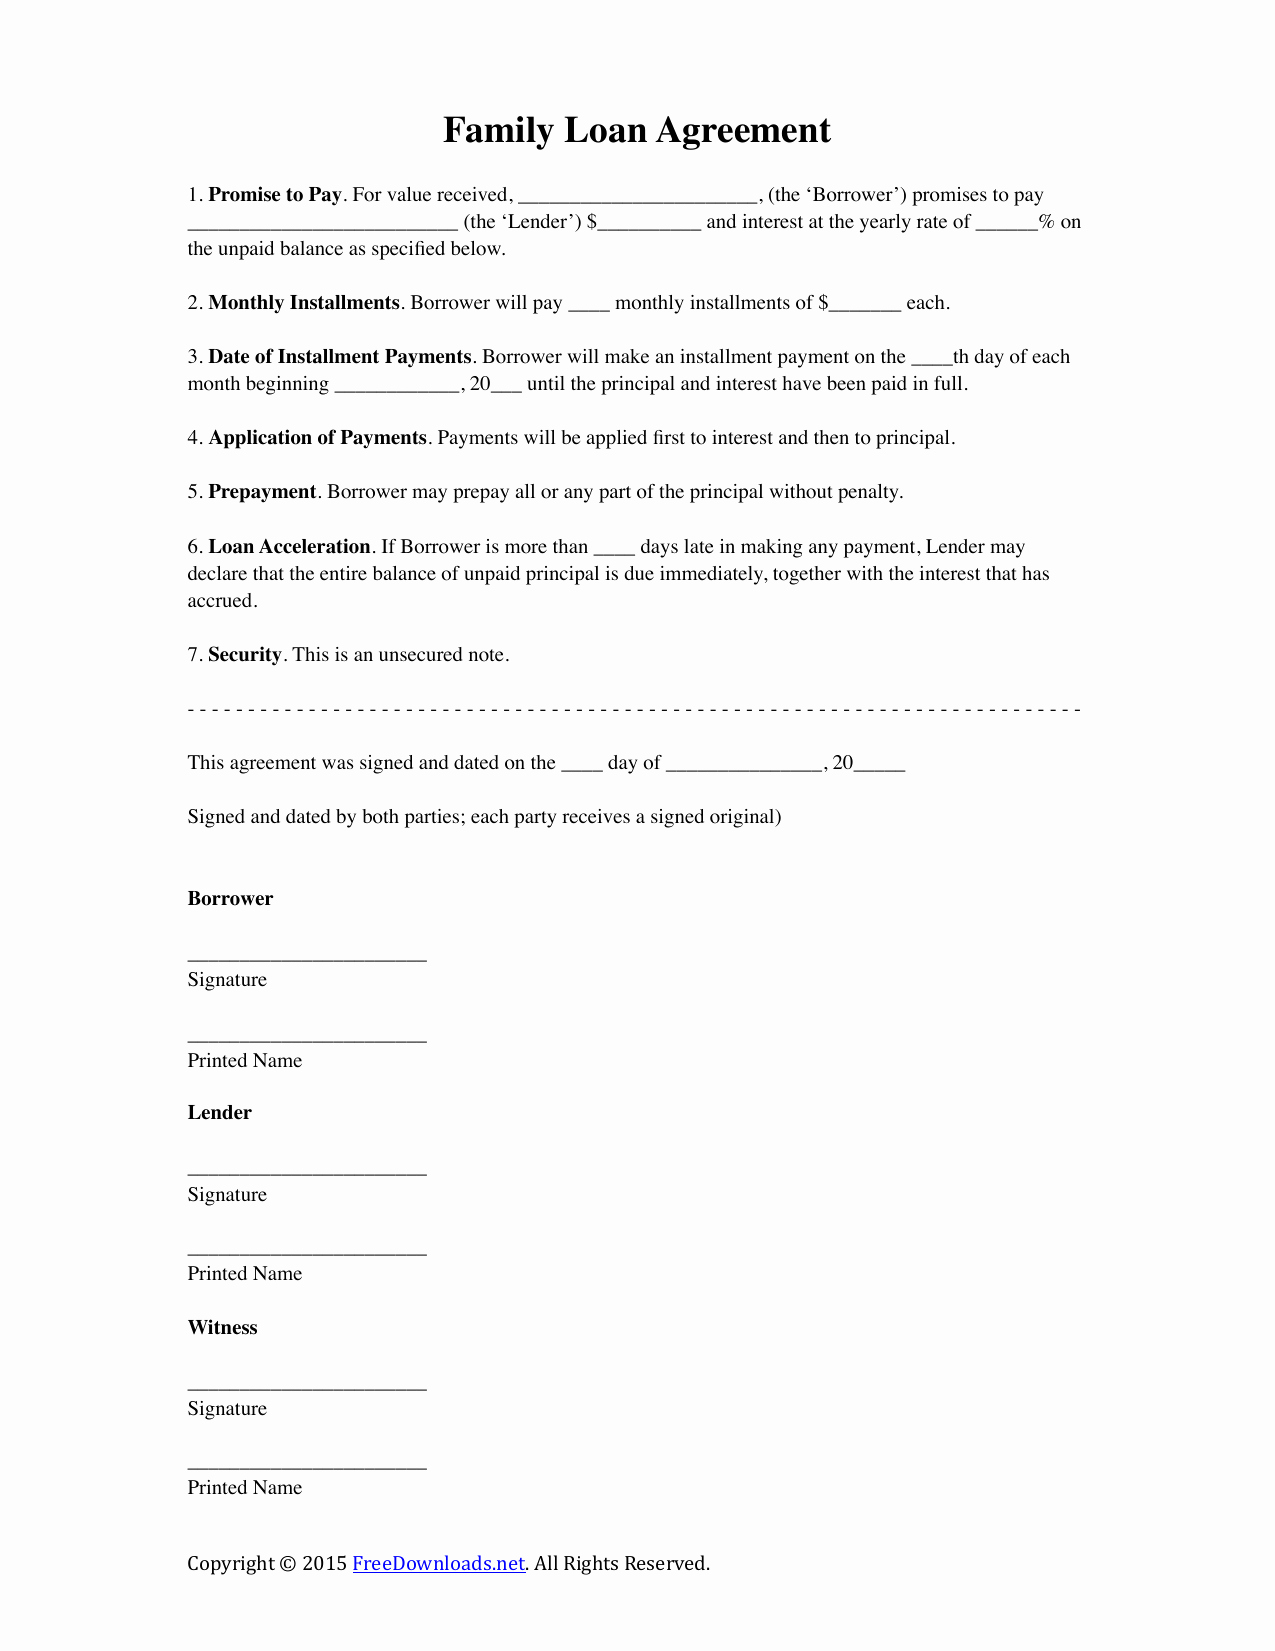 Family Loan Agreement Template Free New Download Family Loan Agreement Template Pdf Rtf